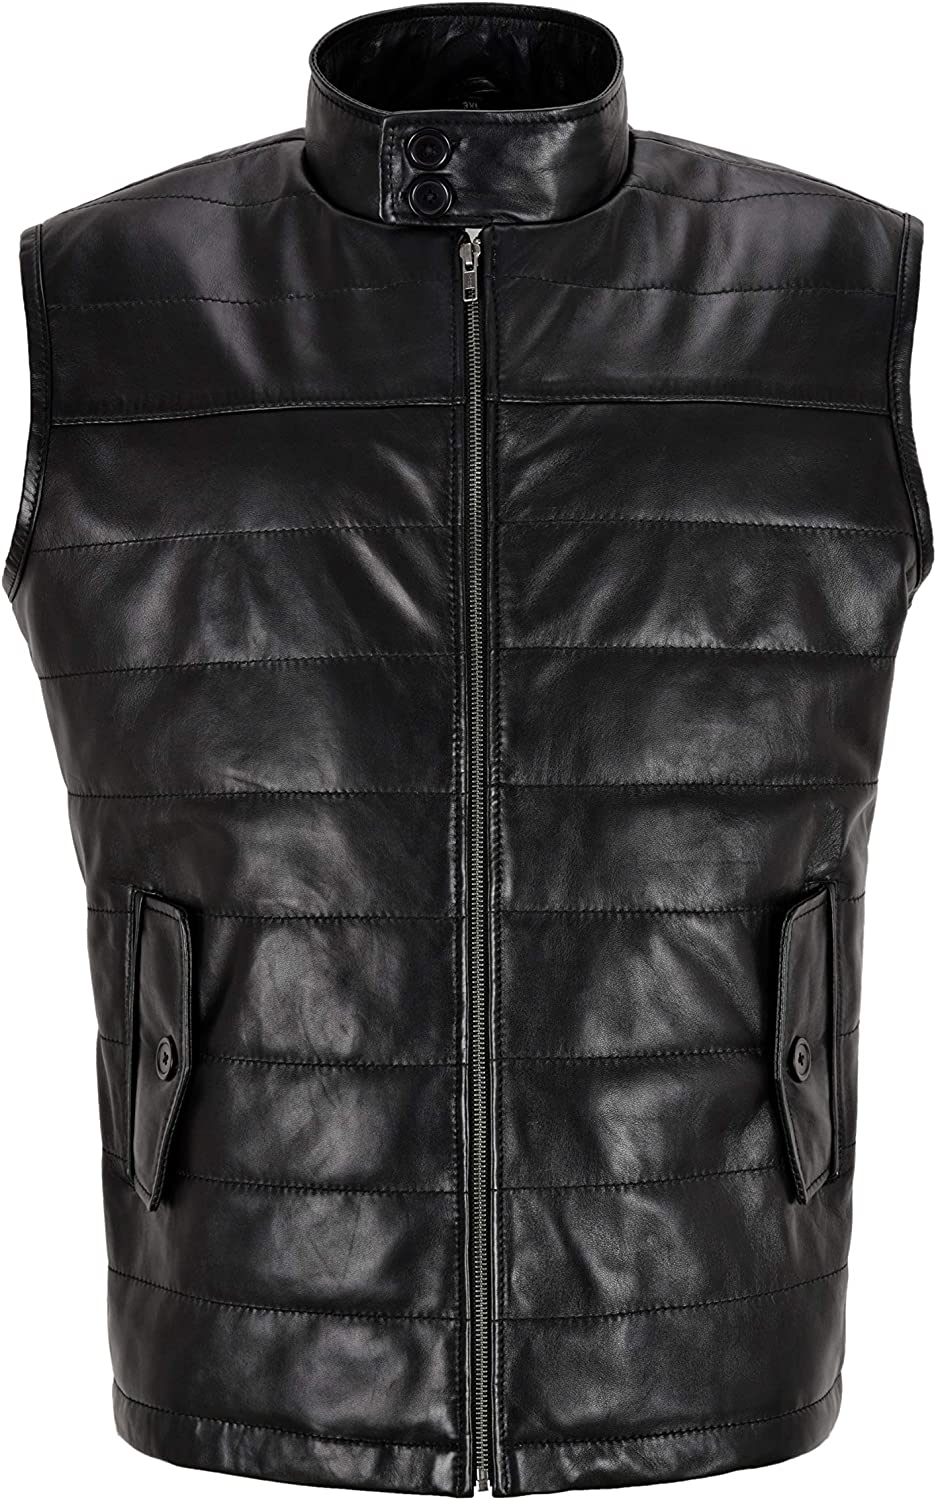 Men's Quilted Leather Gilet Black Real Lamb Leather Winters Waistcoat Vest 4330